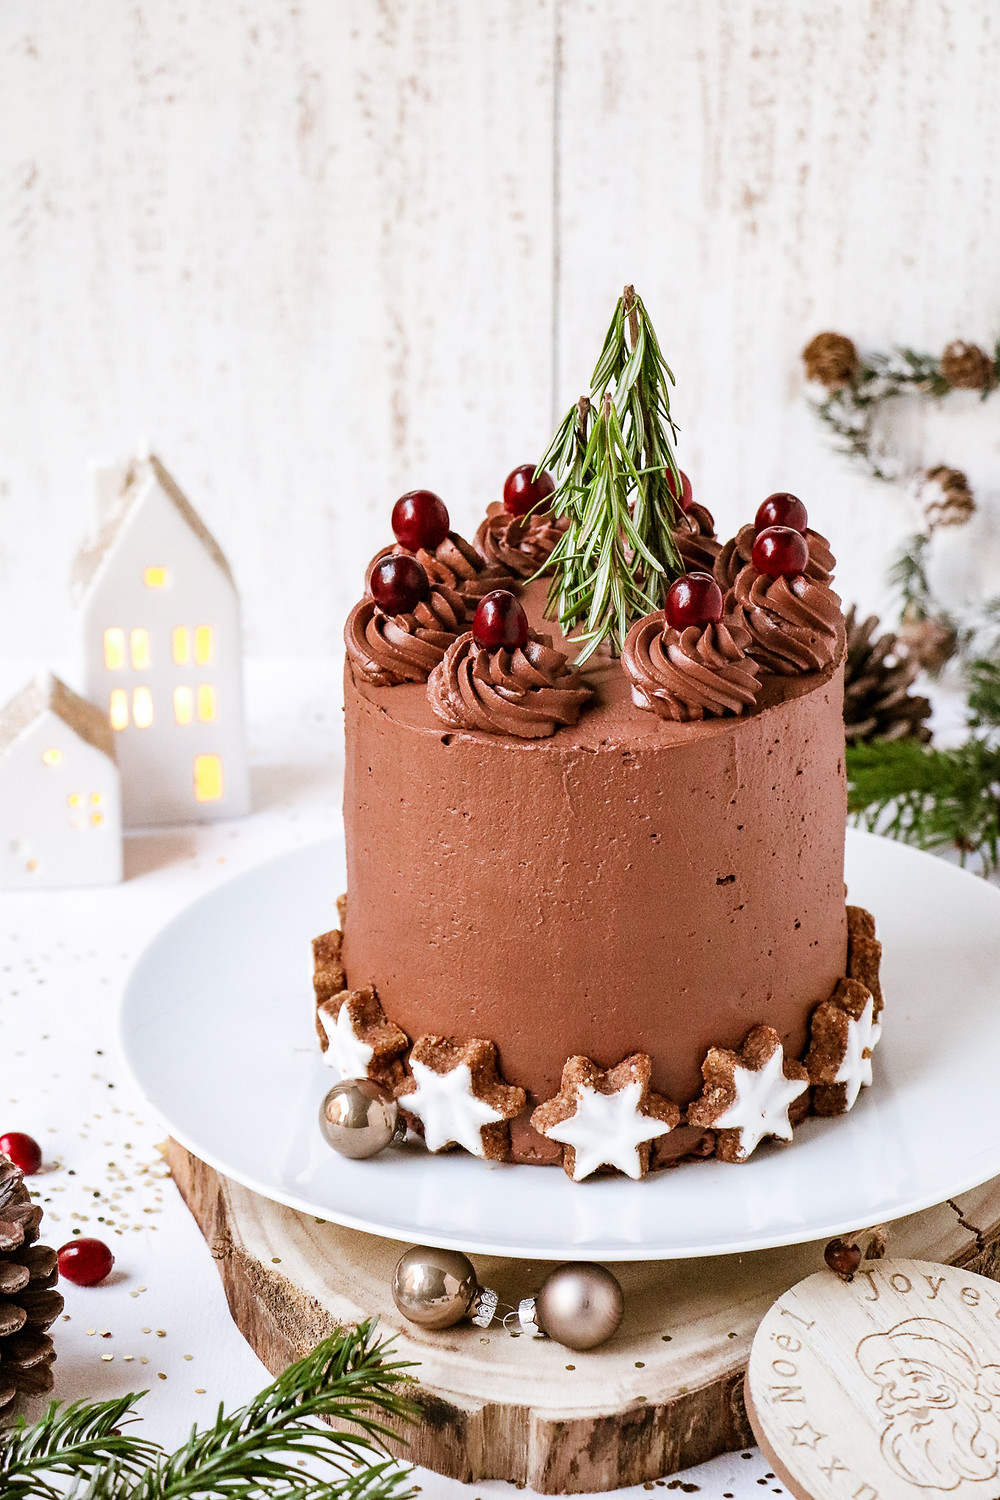 Layer cake chocolat et canneberges, Elodie's Bakery